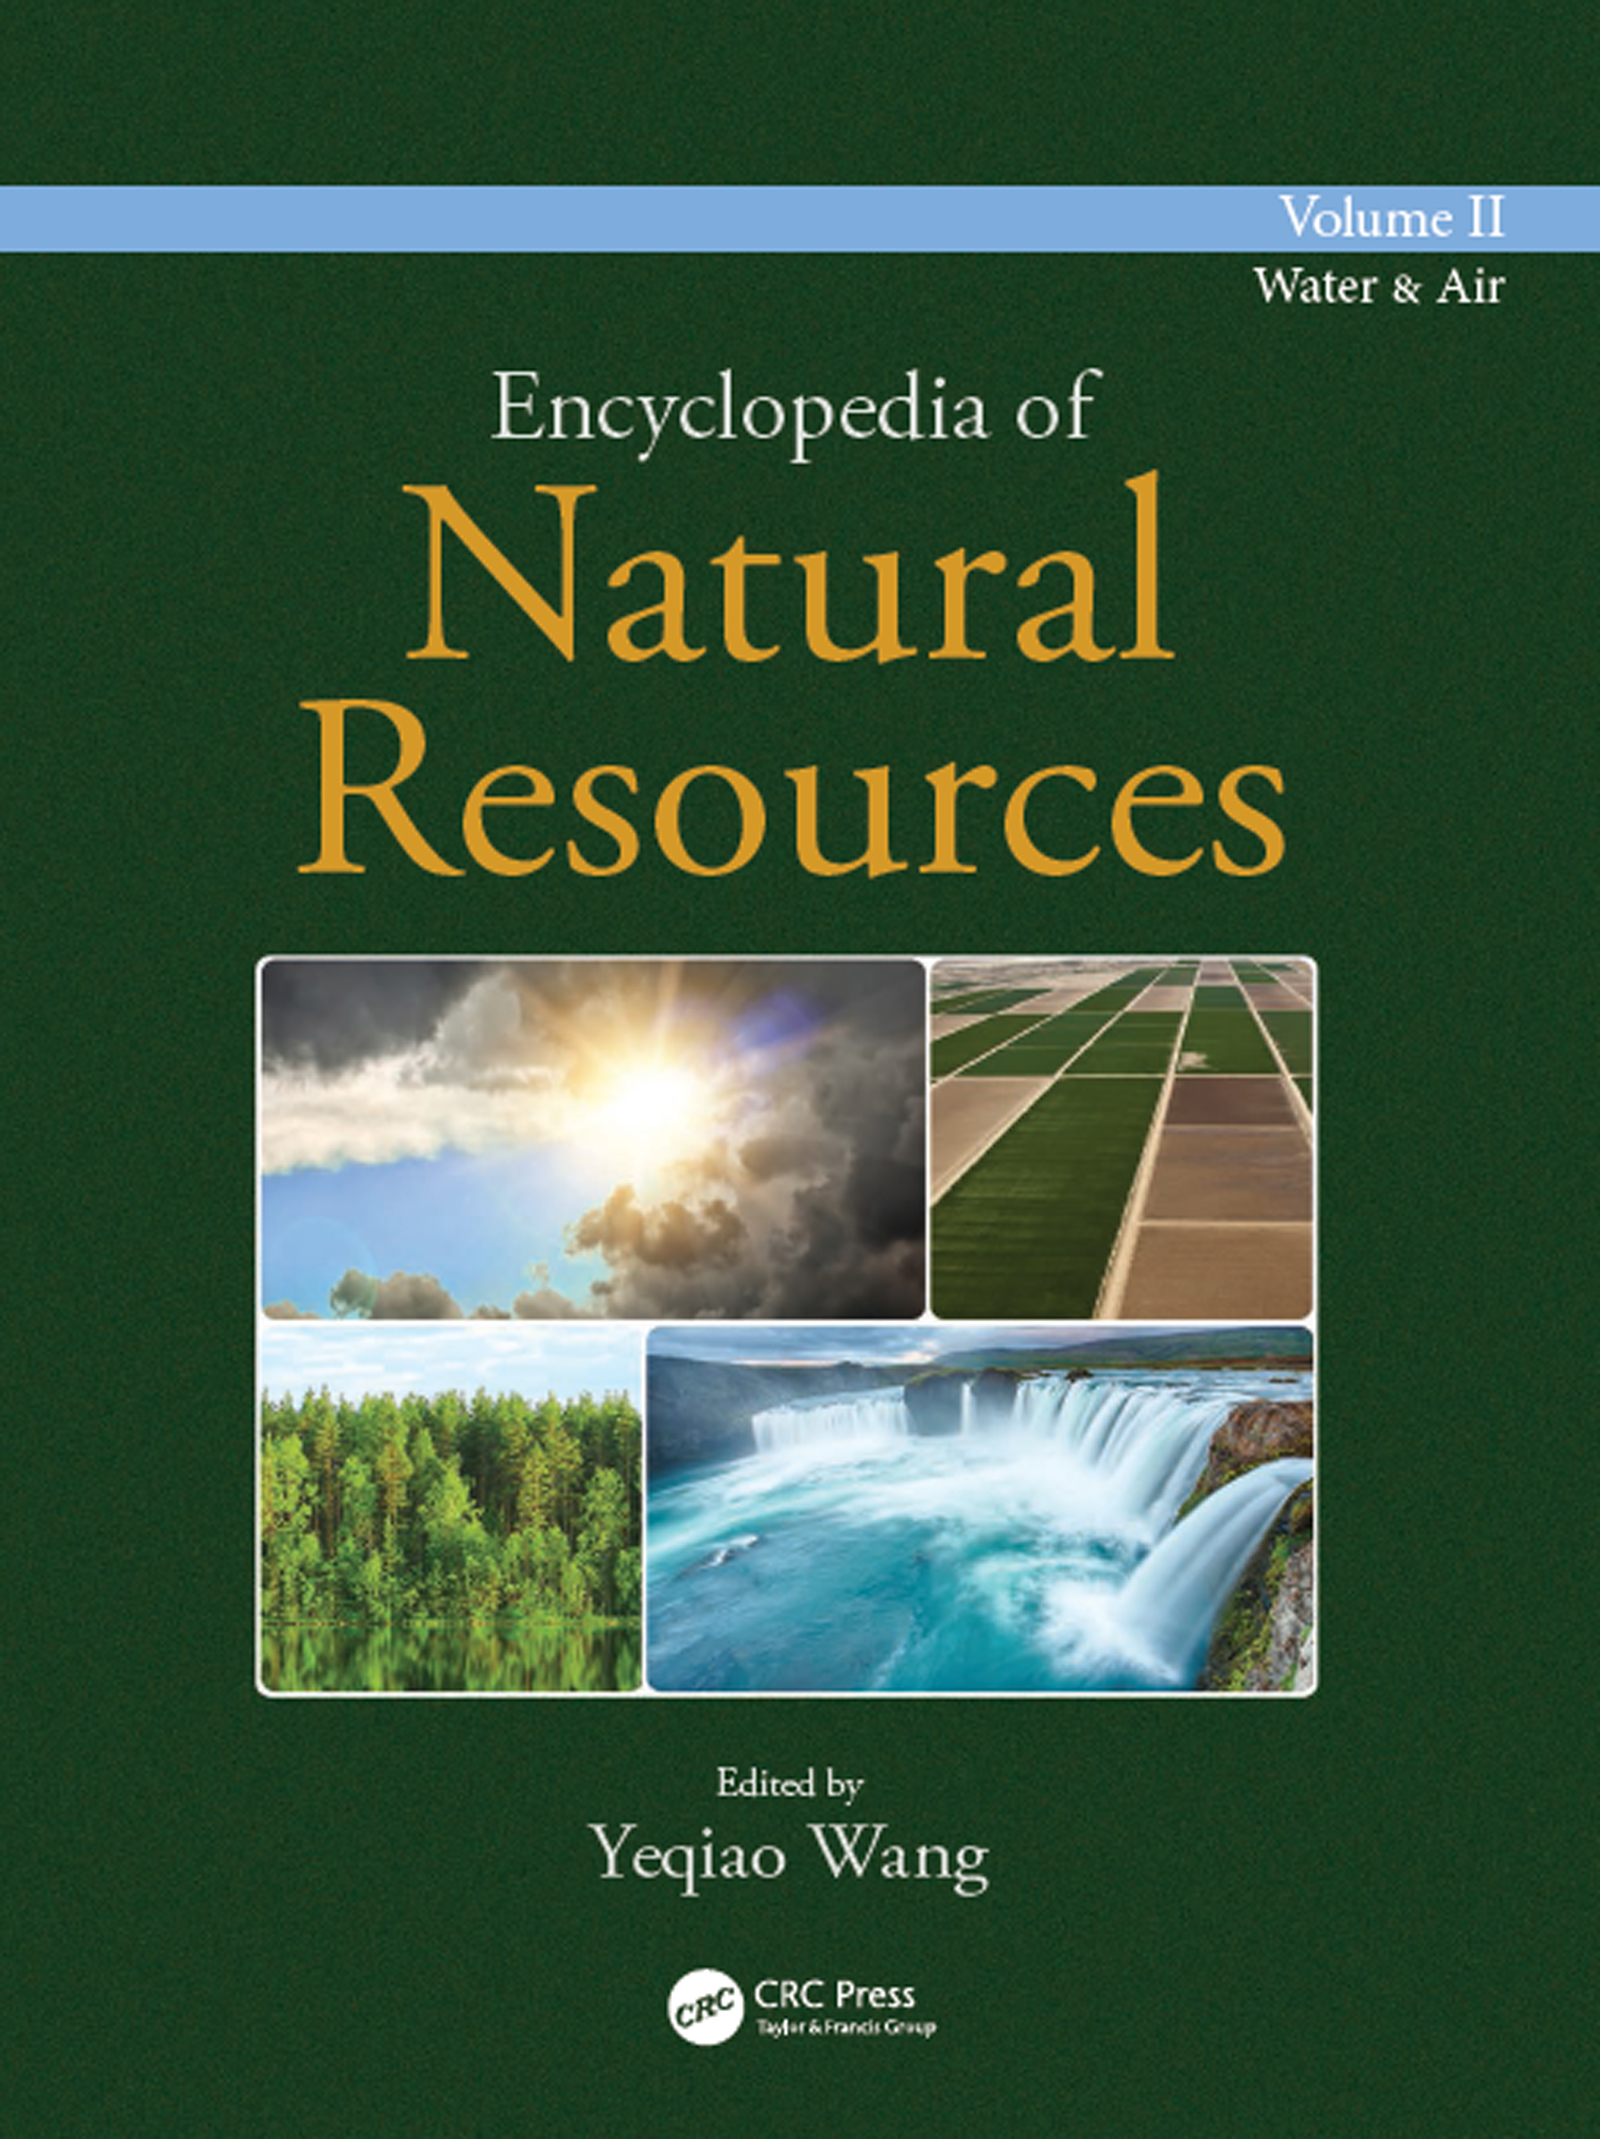 Encyclopedia of Natural Resources - Water and Air - Vol II